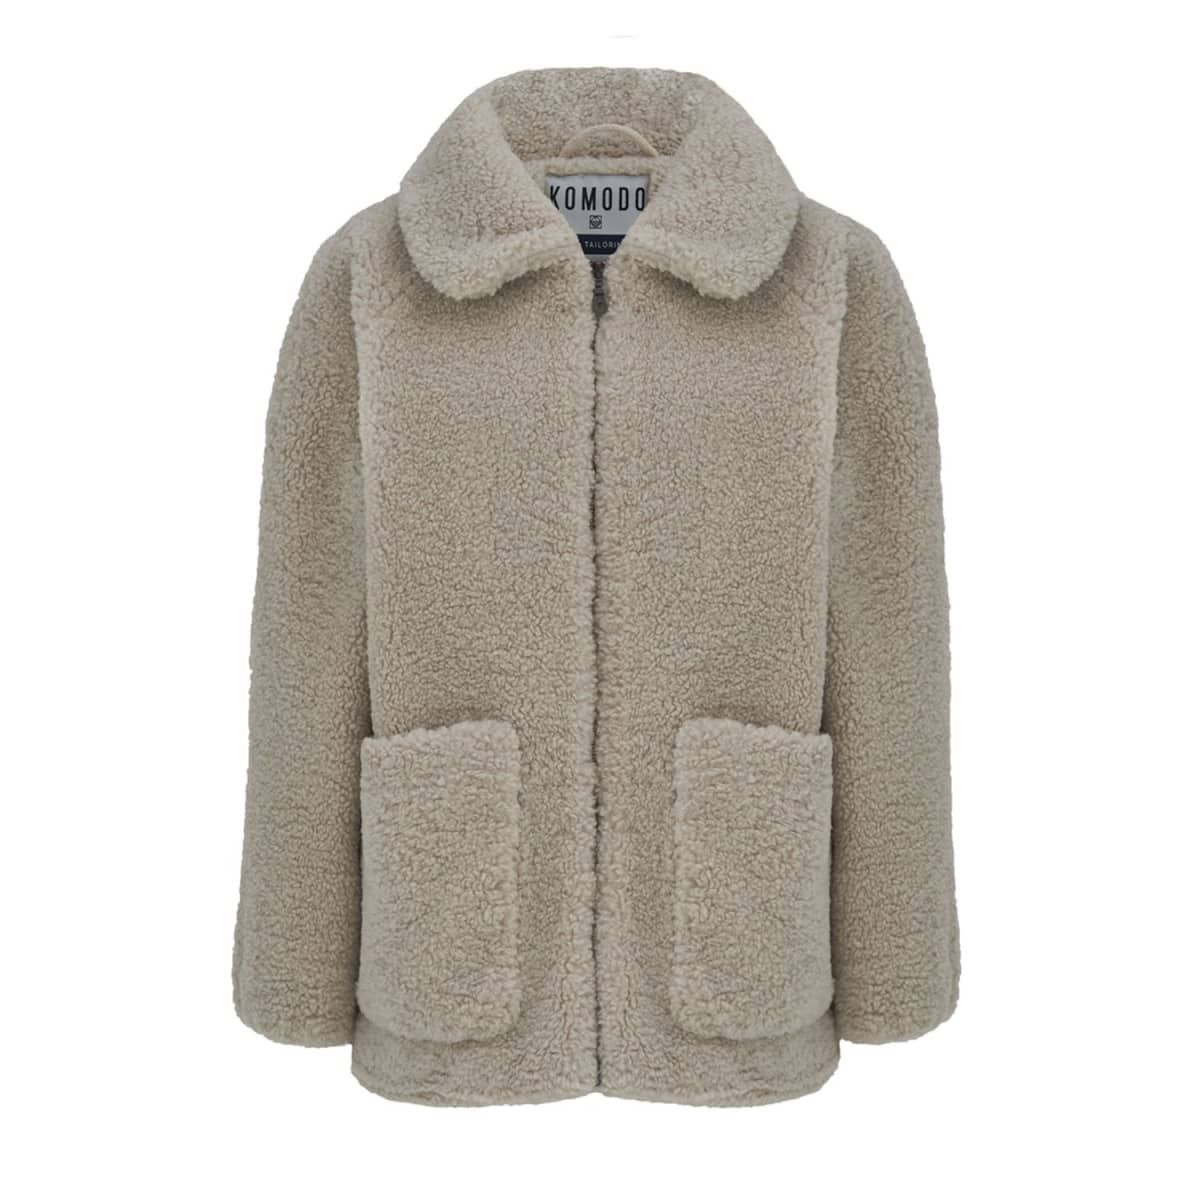 Women's Fuzzy Jacket In Warm Sand